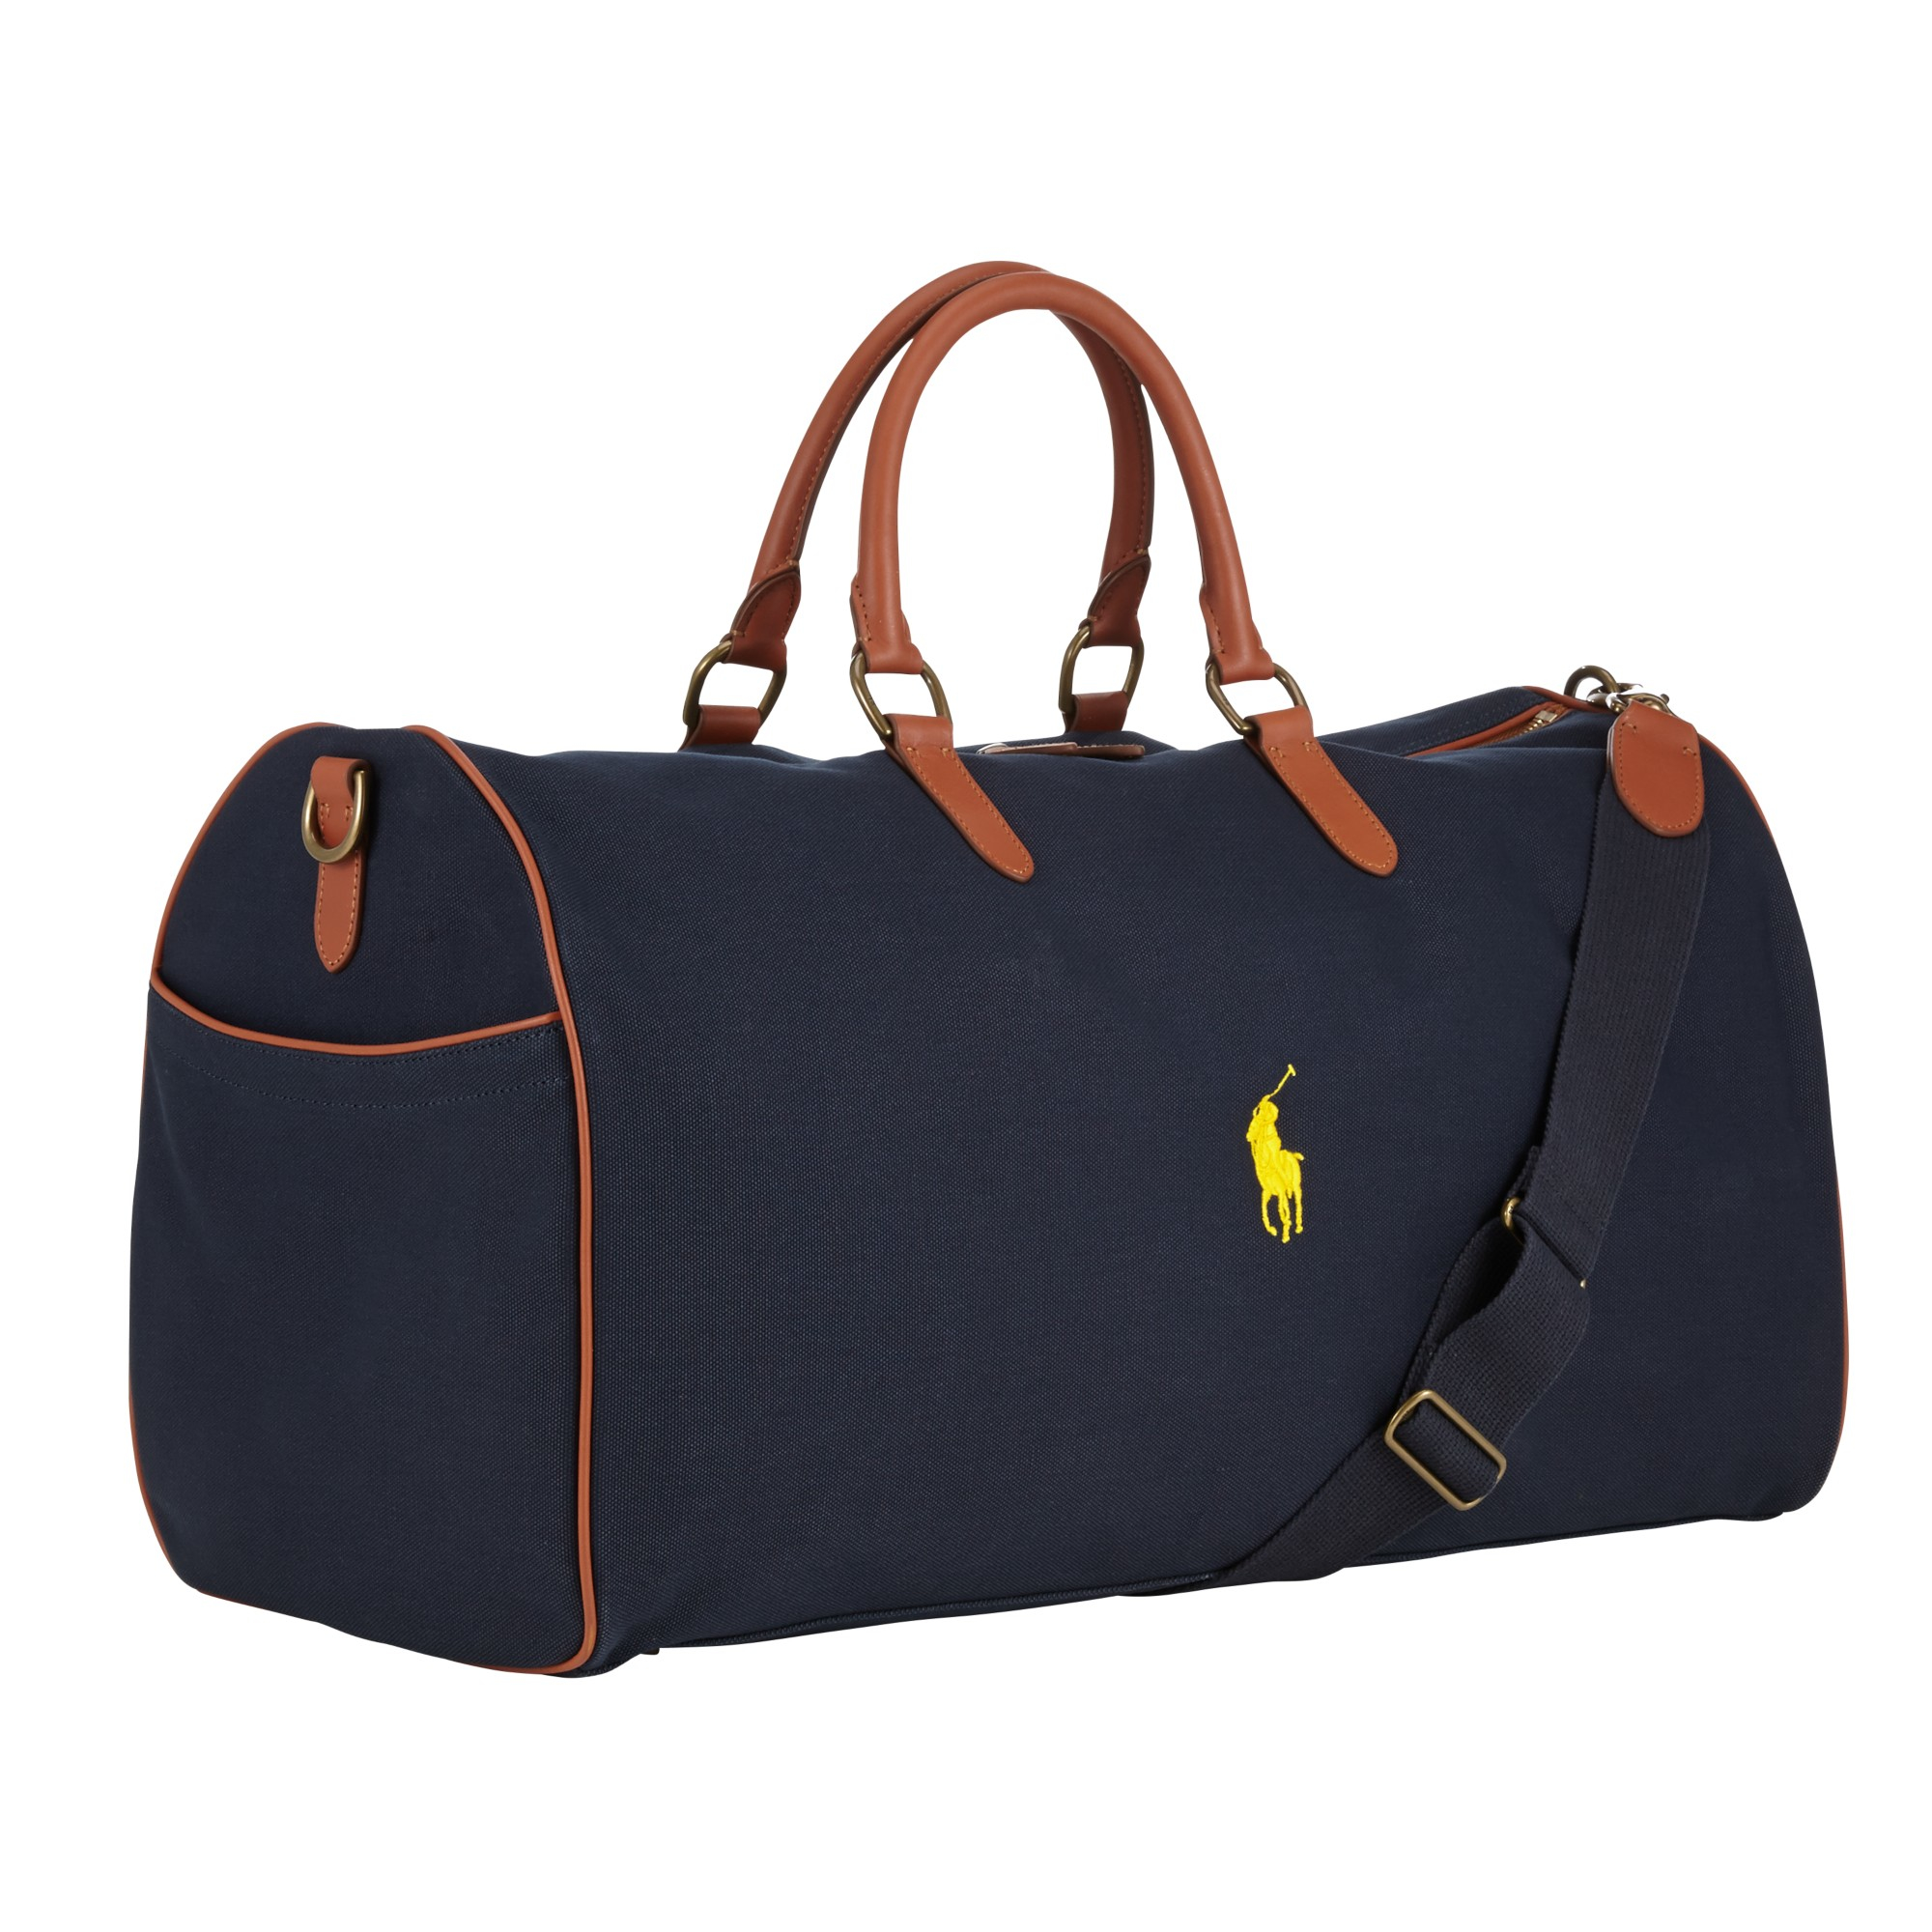 63d764af74 ... inexpensive polo ralph lauren travel bags ba0cc 6daf2